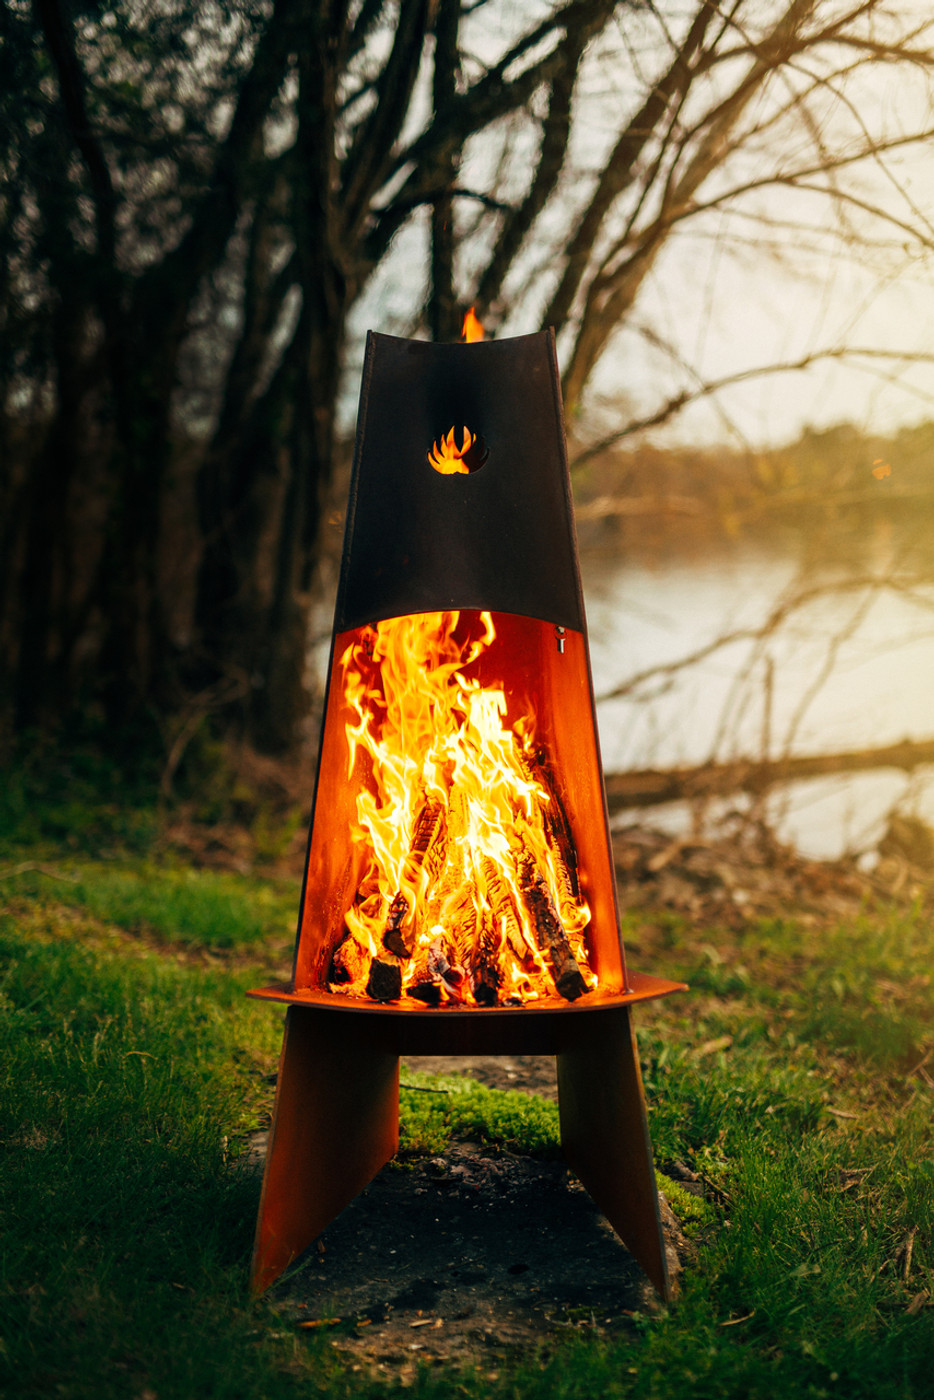 Vesuvius channels smoke and fire up the flue to the sky above.  Our trilateral design protects the fire from wind and lessens the spread of sparks and embers.